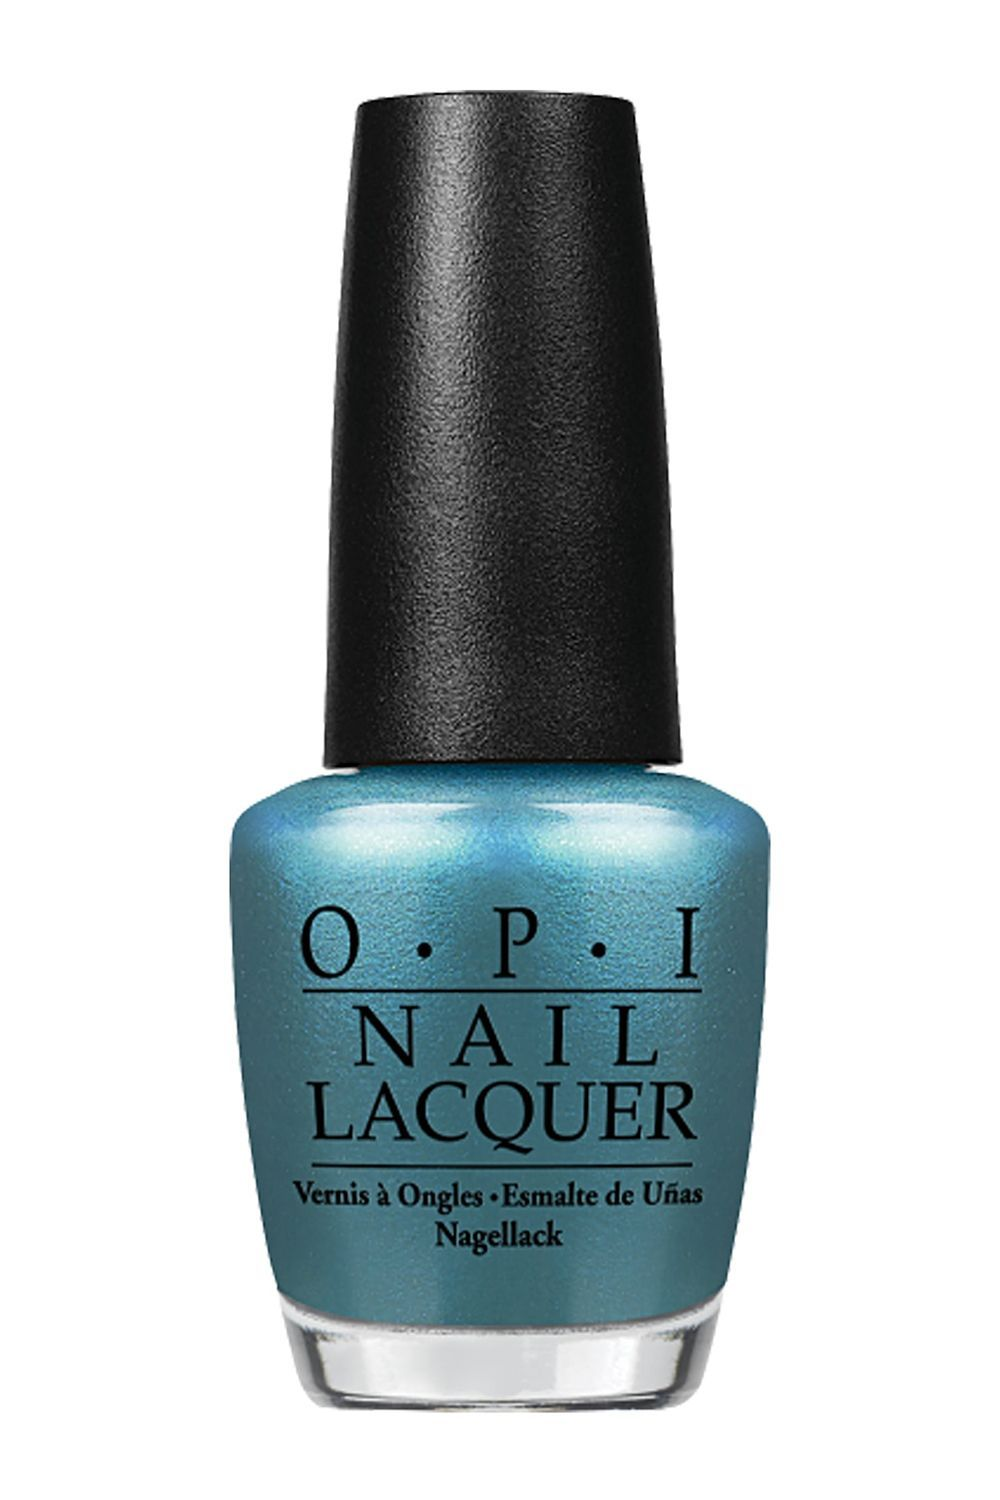 Opi In Teal The Cows Come Home